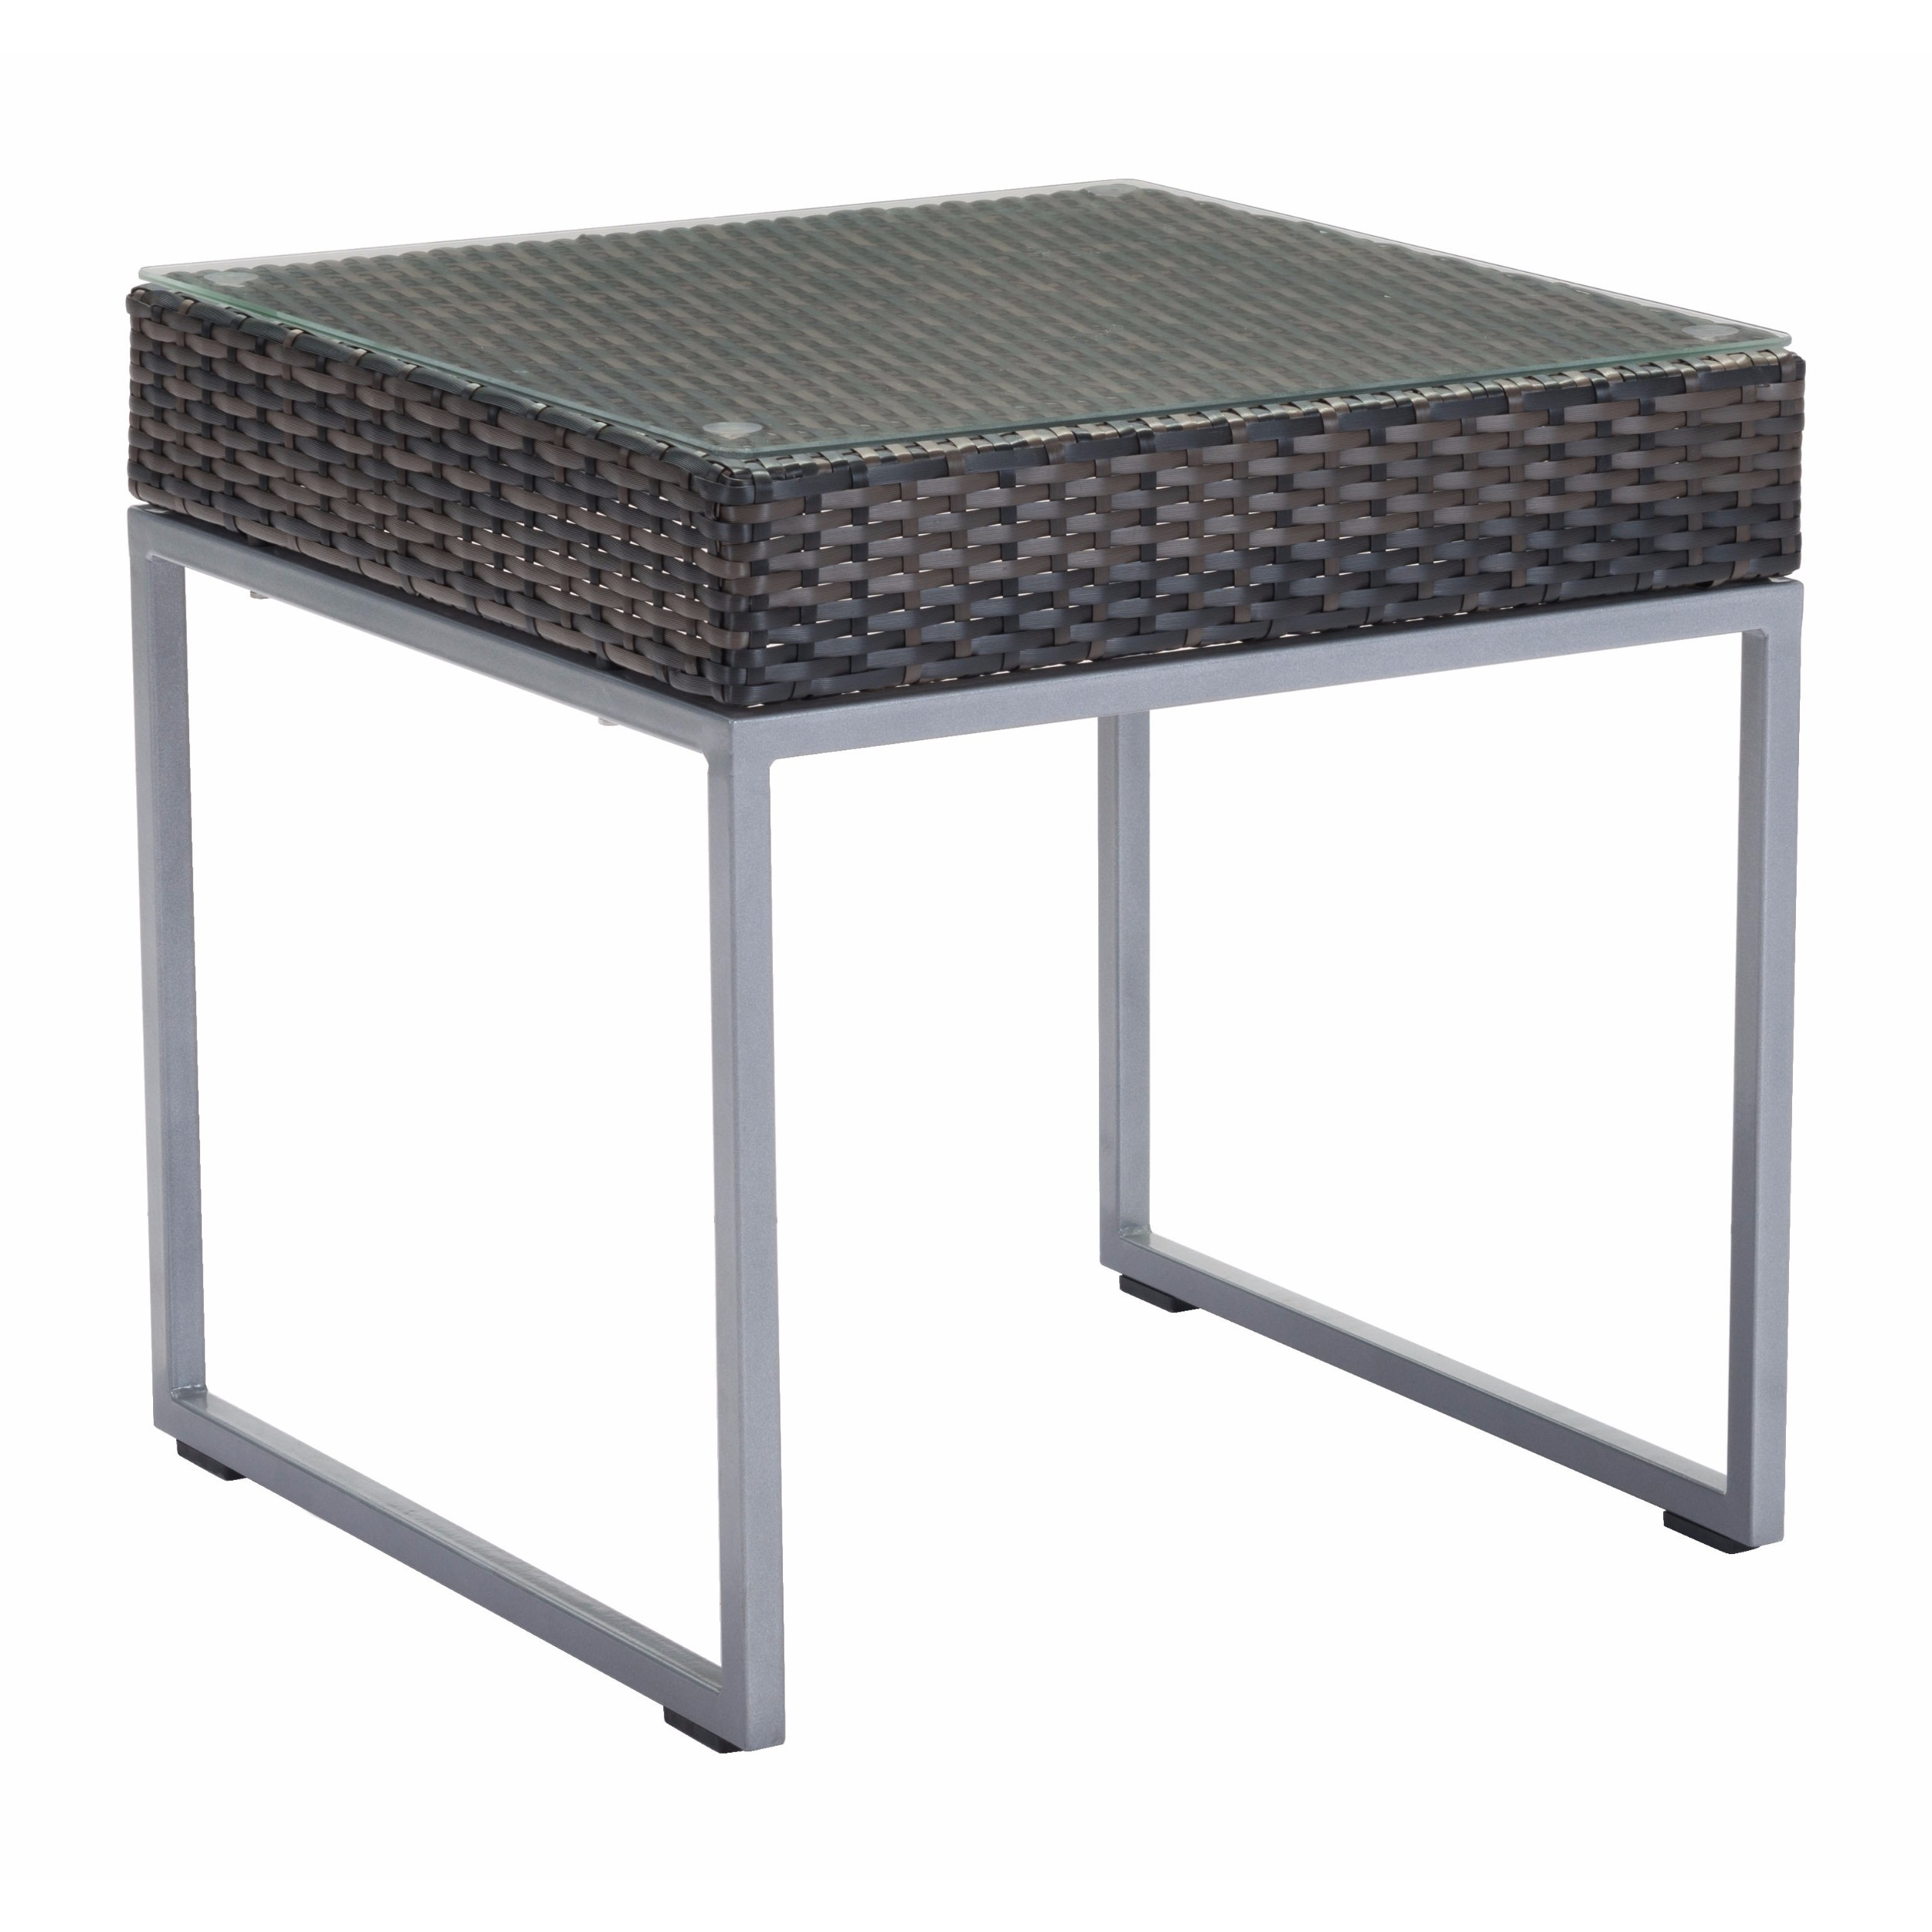 side table accent tables outdoor furniture metal seating square legs bar height sofa serving with storage dining set corner end small chest drawers for hallway coffee accessories